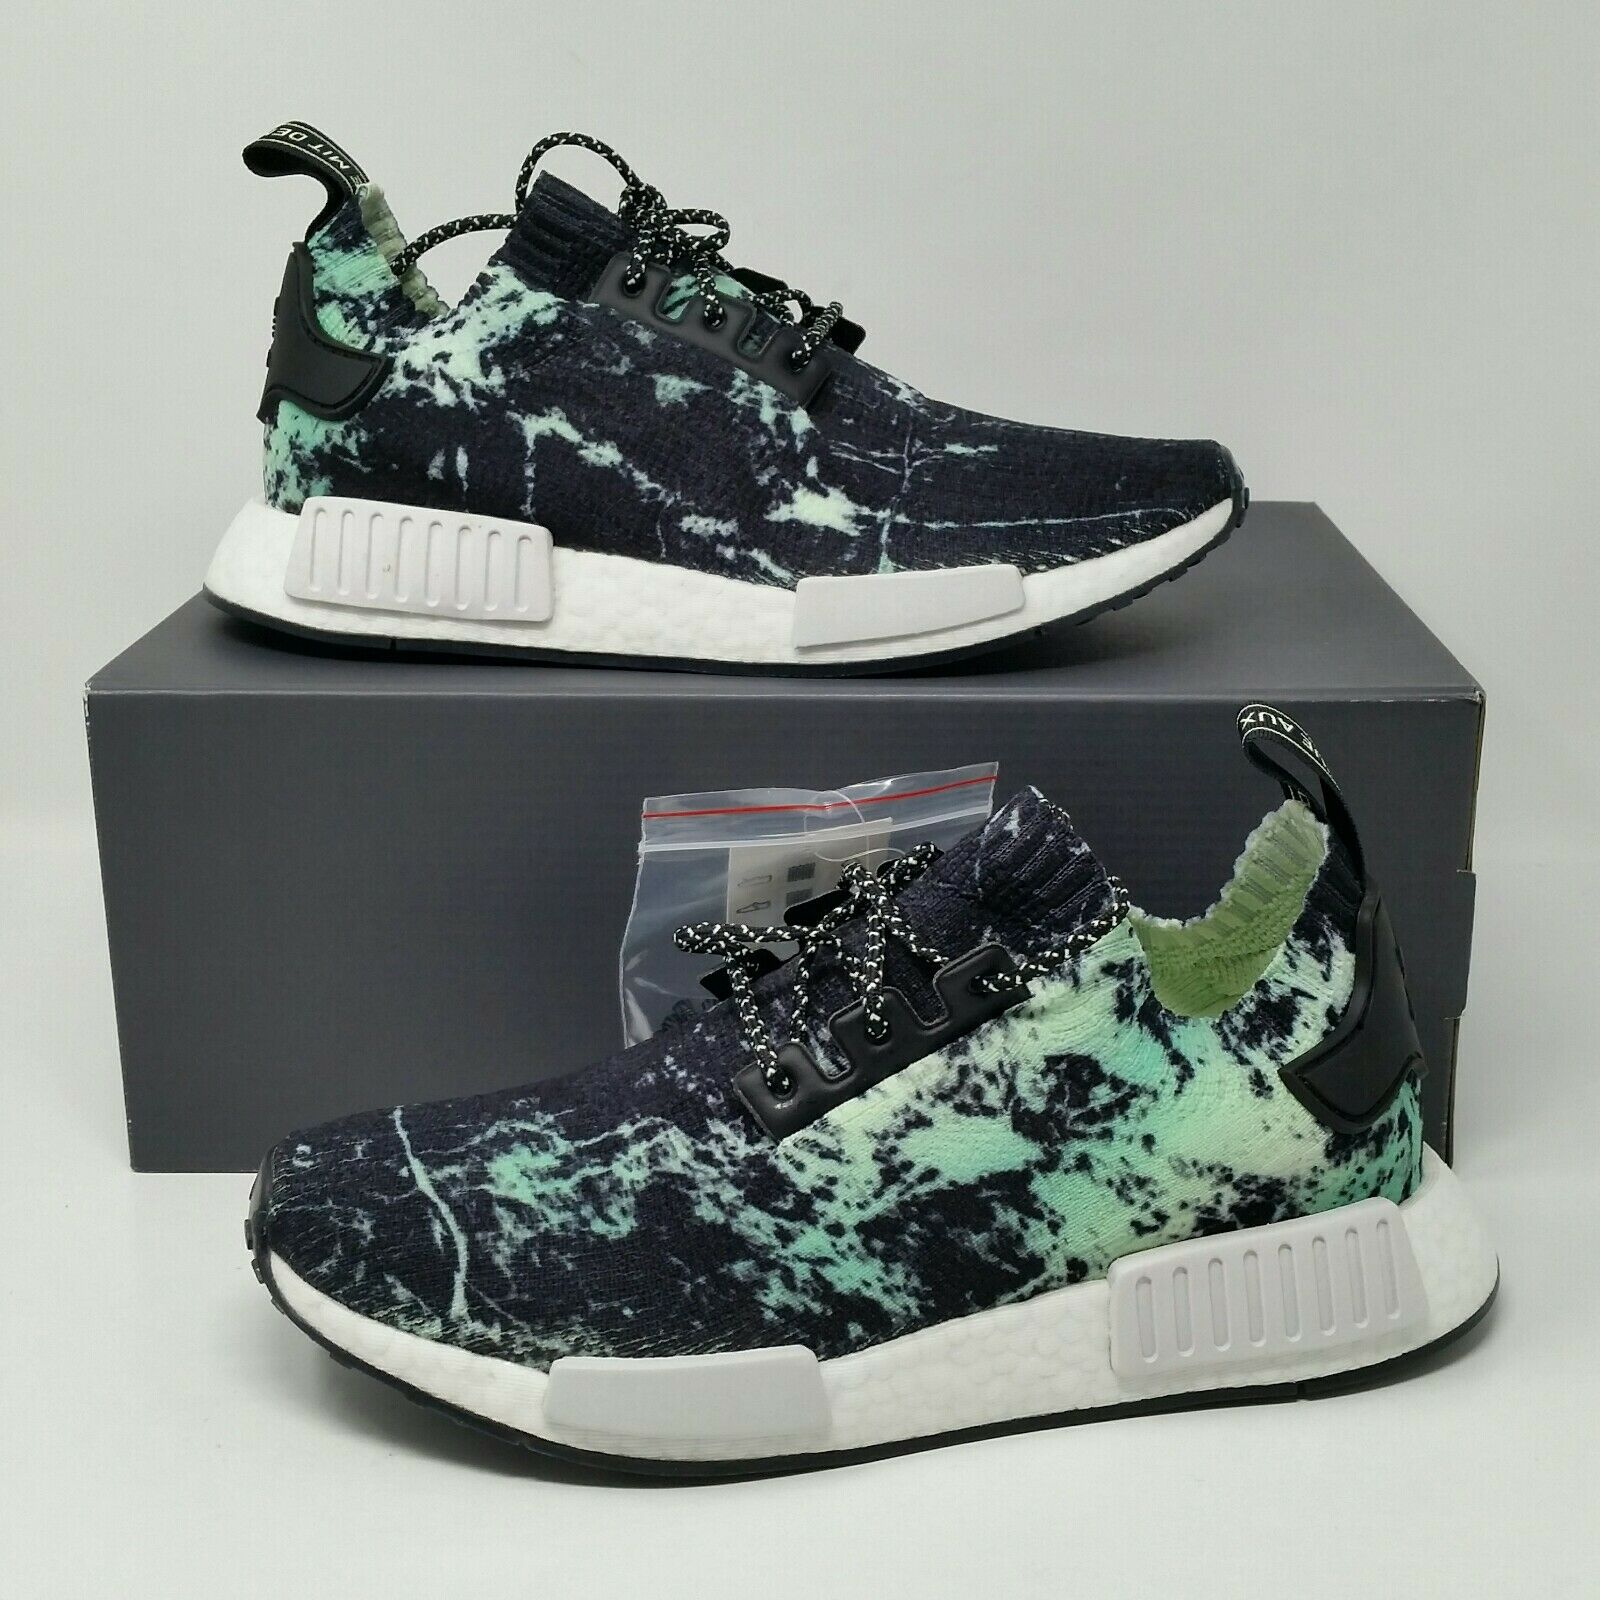 the best attitude eedbe 97d7e PK R1 NMD Adidas NEW Boost Green Flash Marble Sneakers 8.5 ...